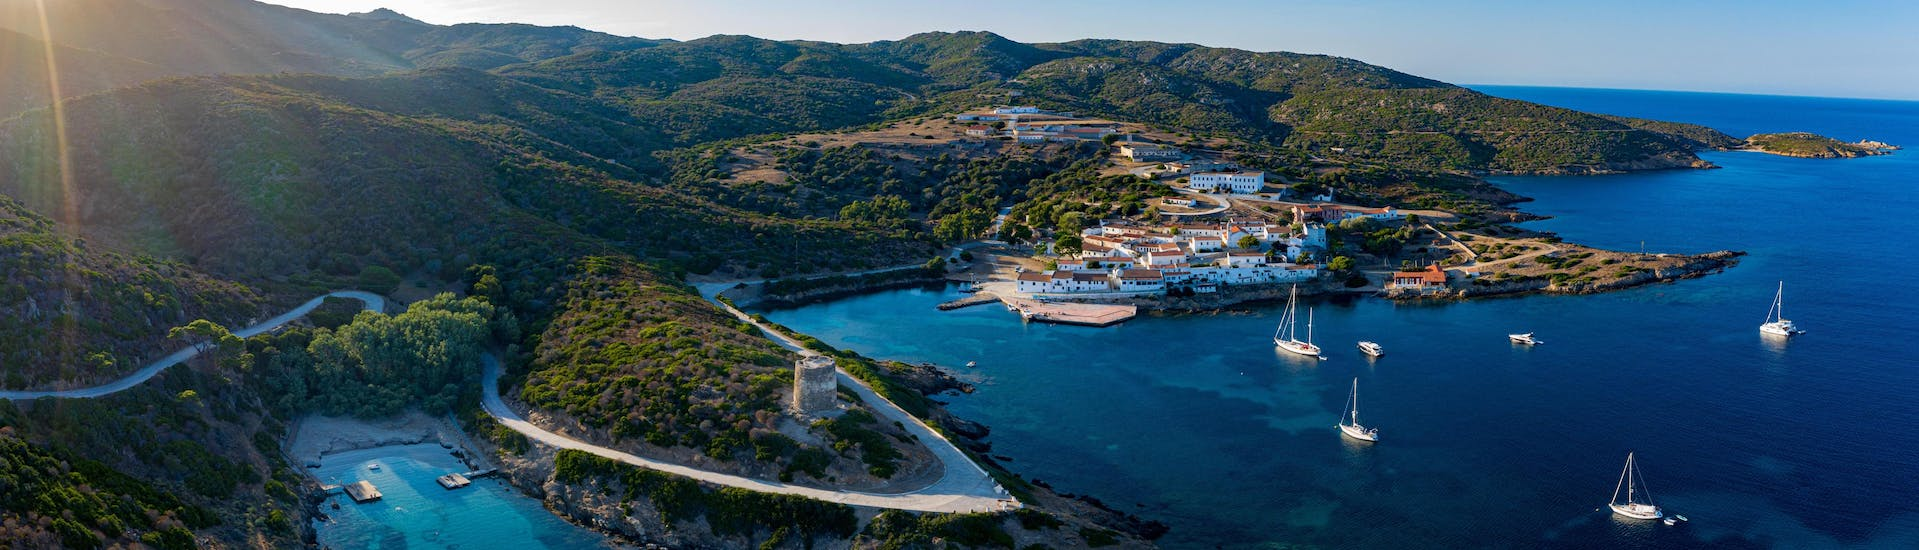 Aerial view of the Asinara National Park, a popular destination for boat trips in Sardinia.